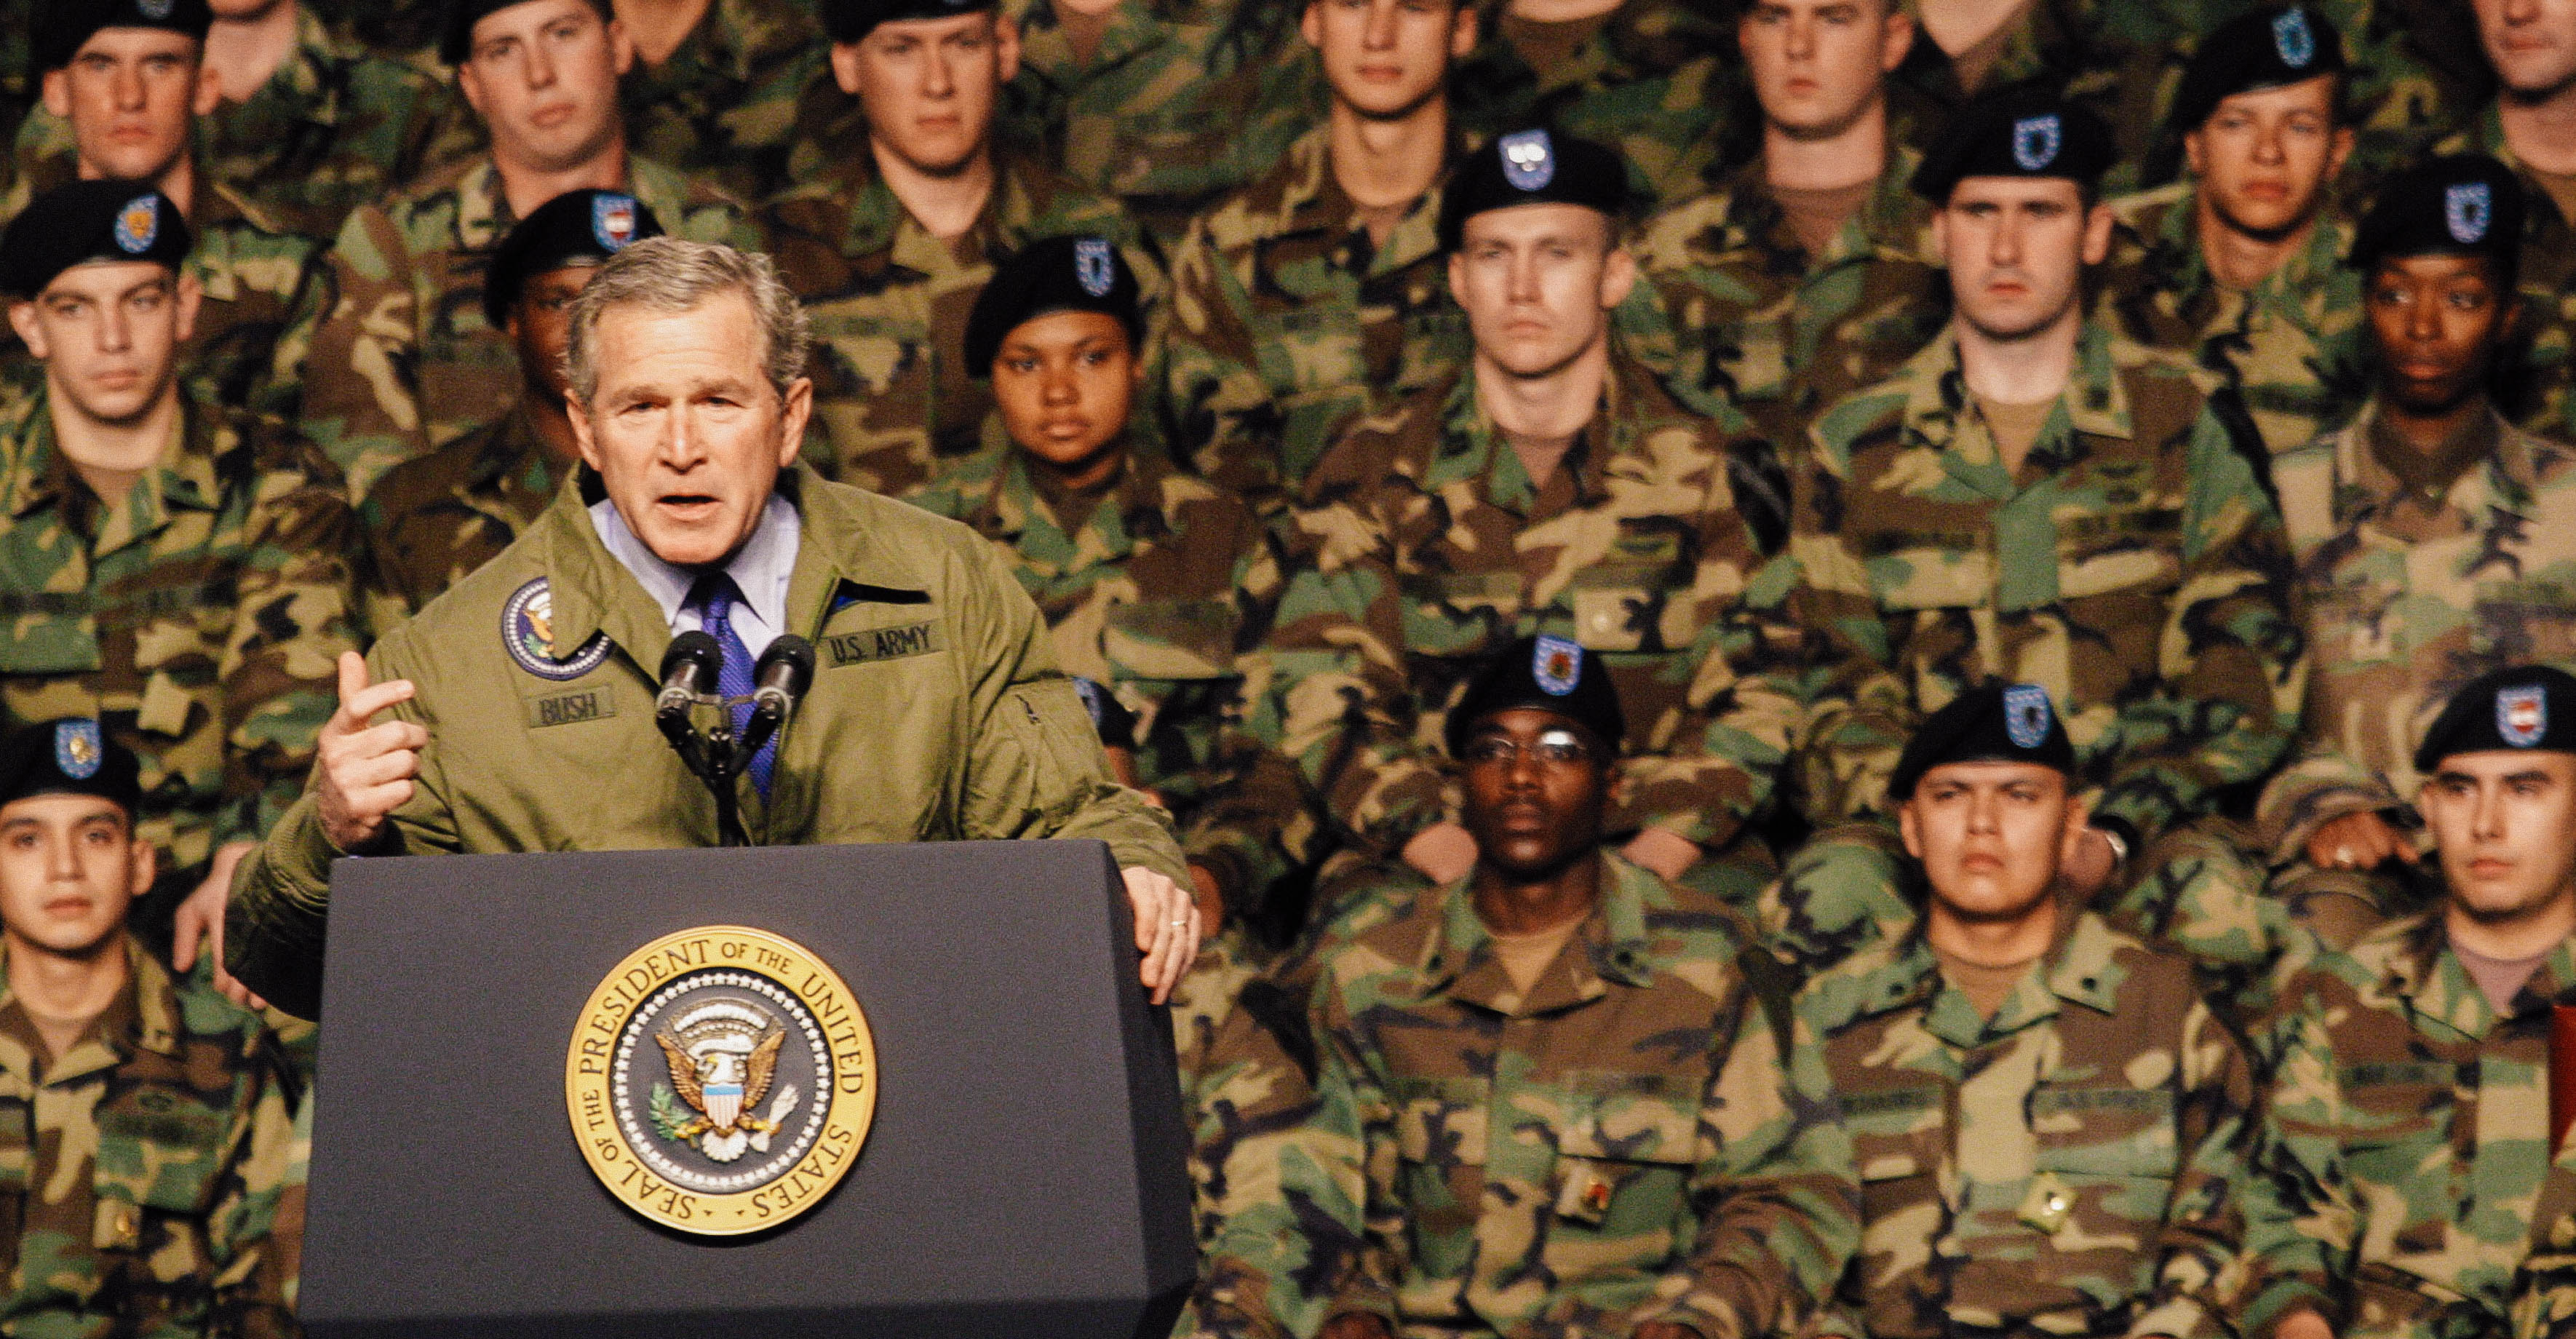 George W. Bush at a podium in front of U.S. troops in camouflage.